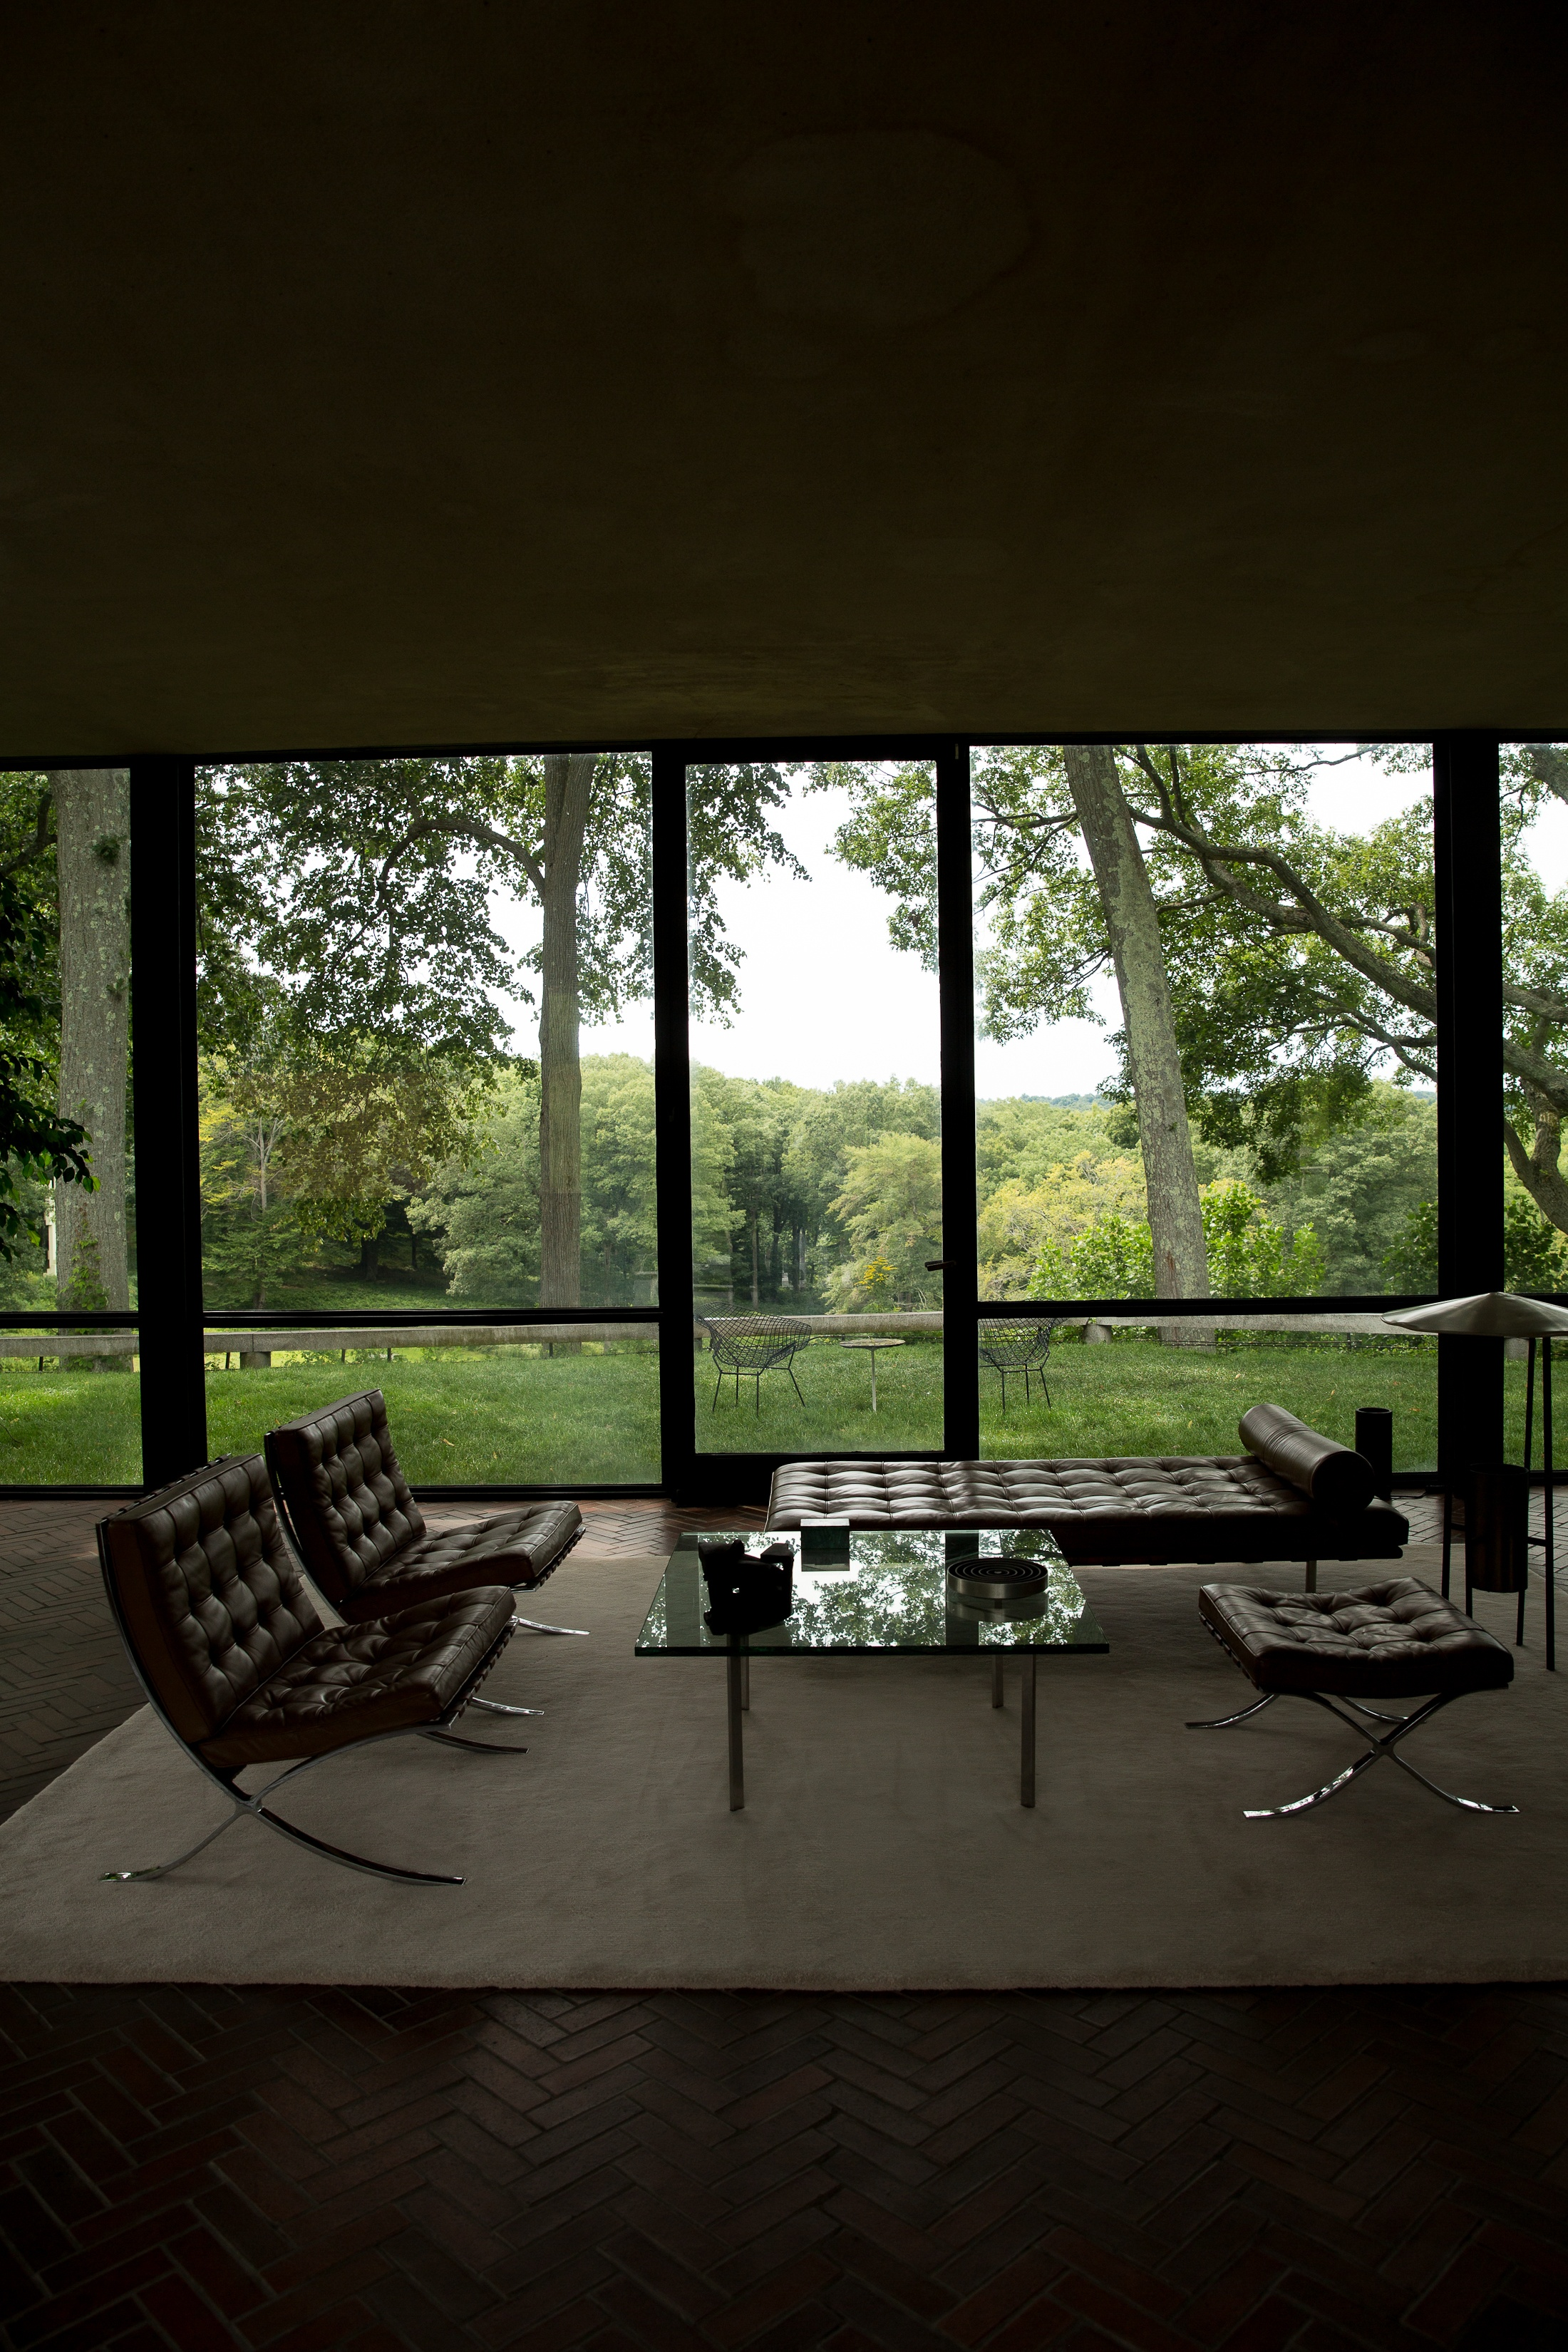 philip johnson the glass house new canaan fujiko nakaya fog exhibition photo shershegoes.com22